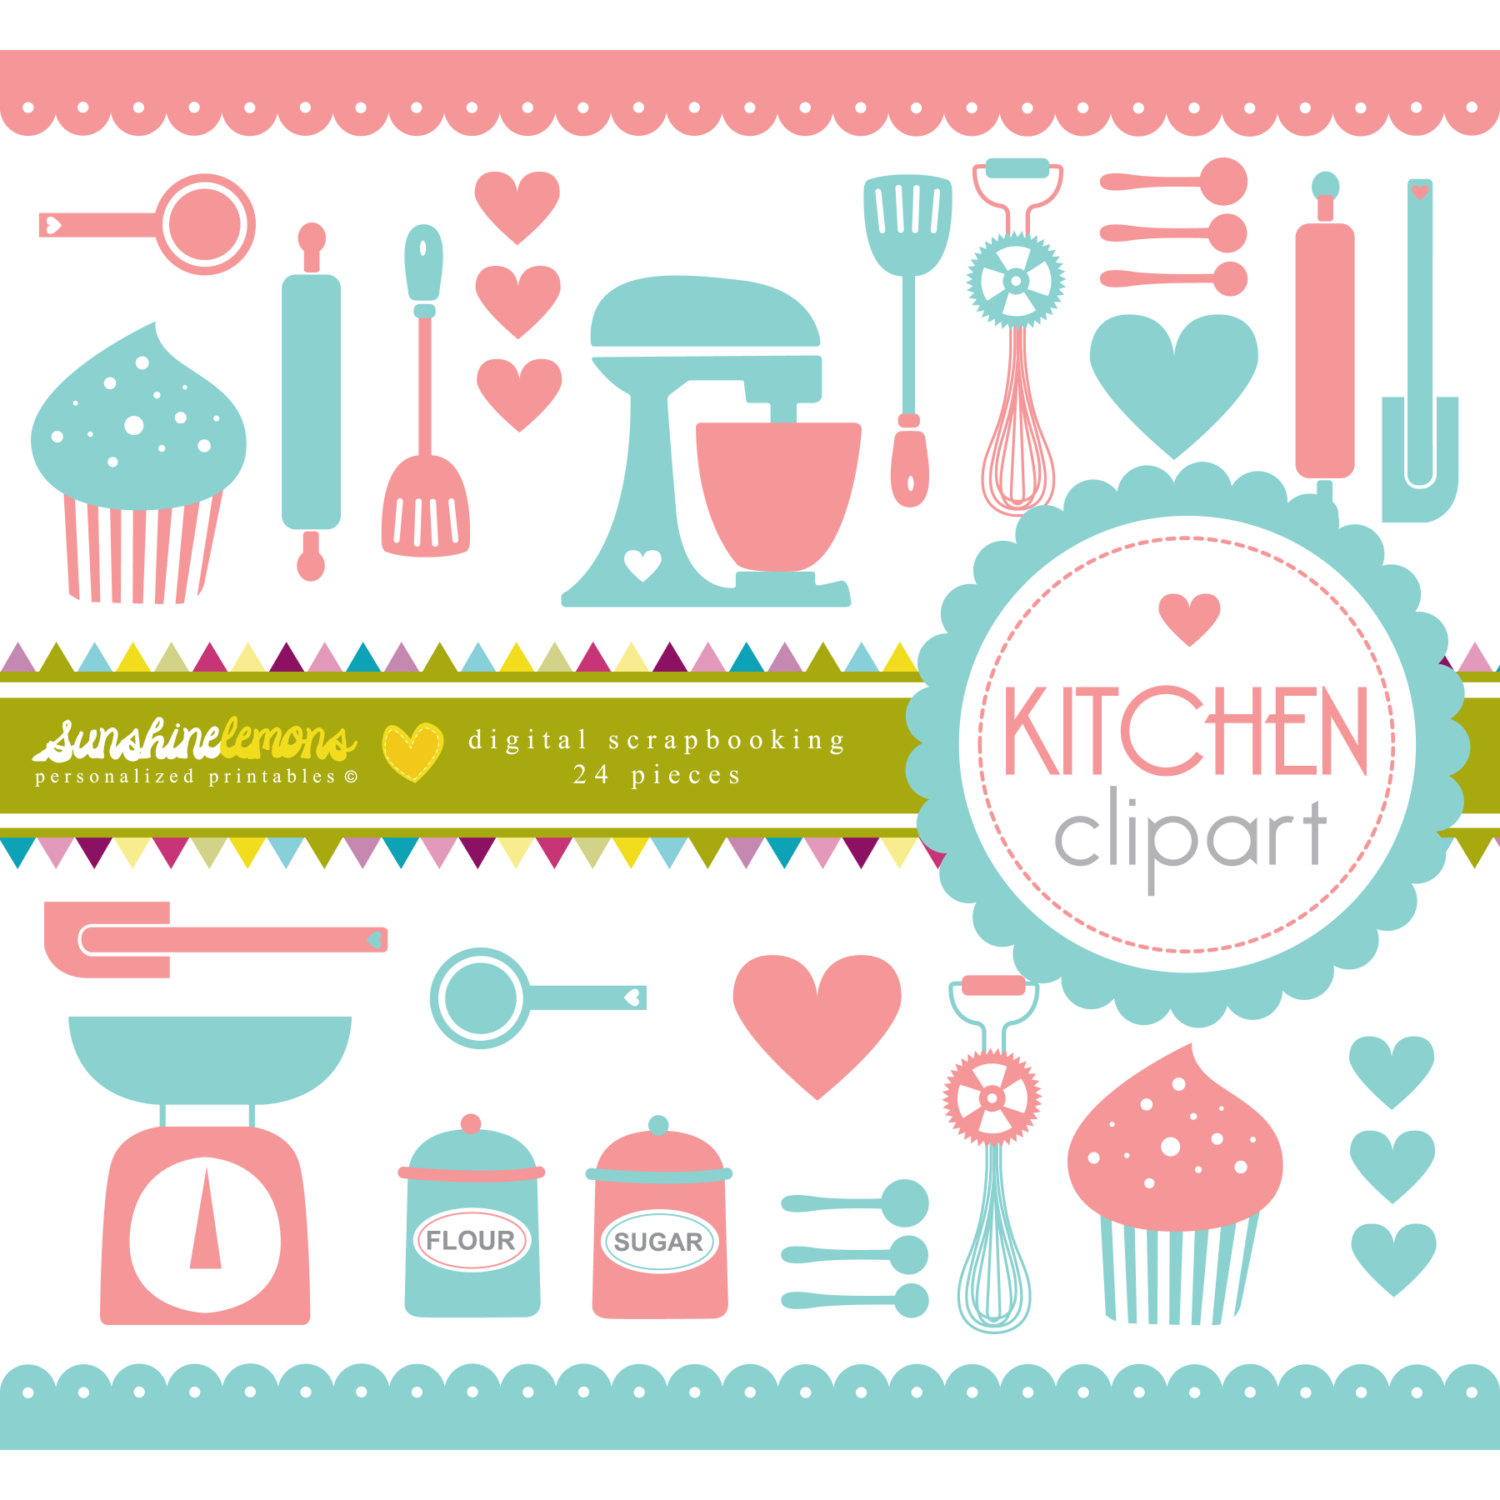 Pastry utensils clipart 20 free Cliparts | Download images ...